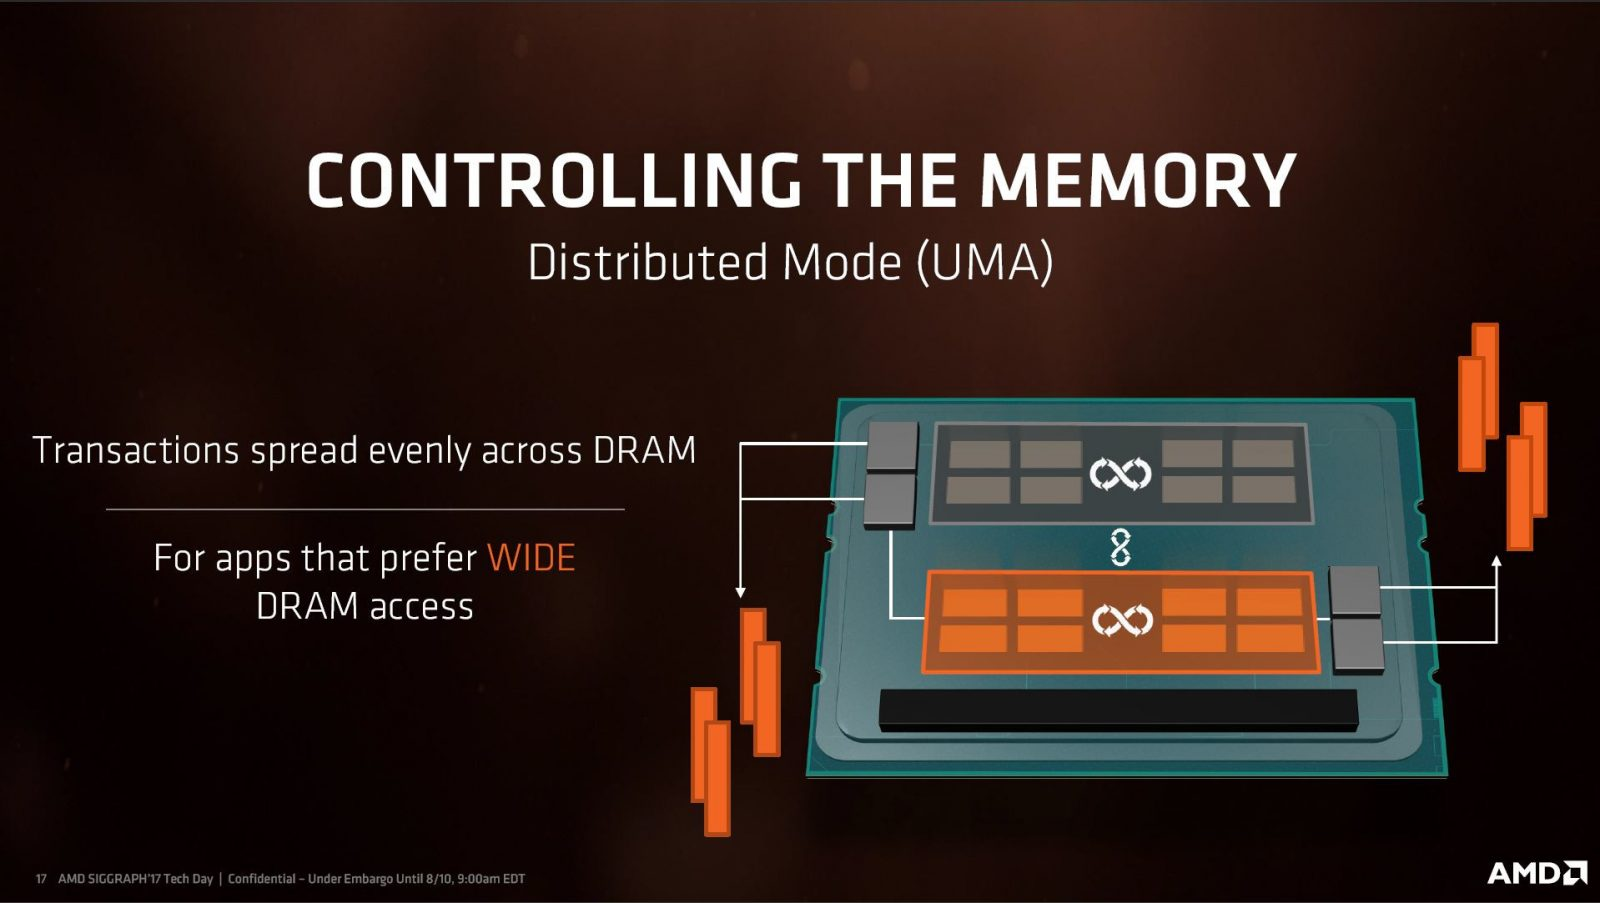 AMD Launches the Highest-Performance Desktop Processor, Ever